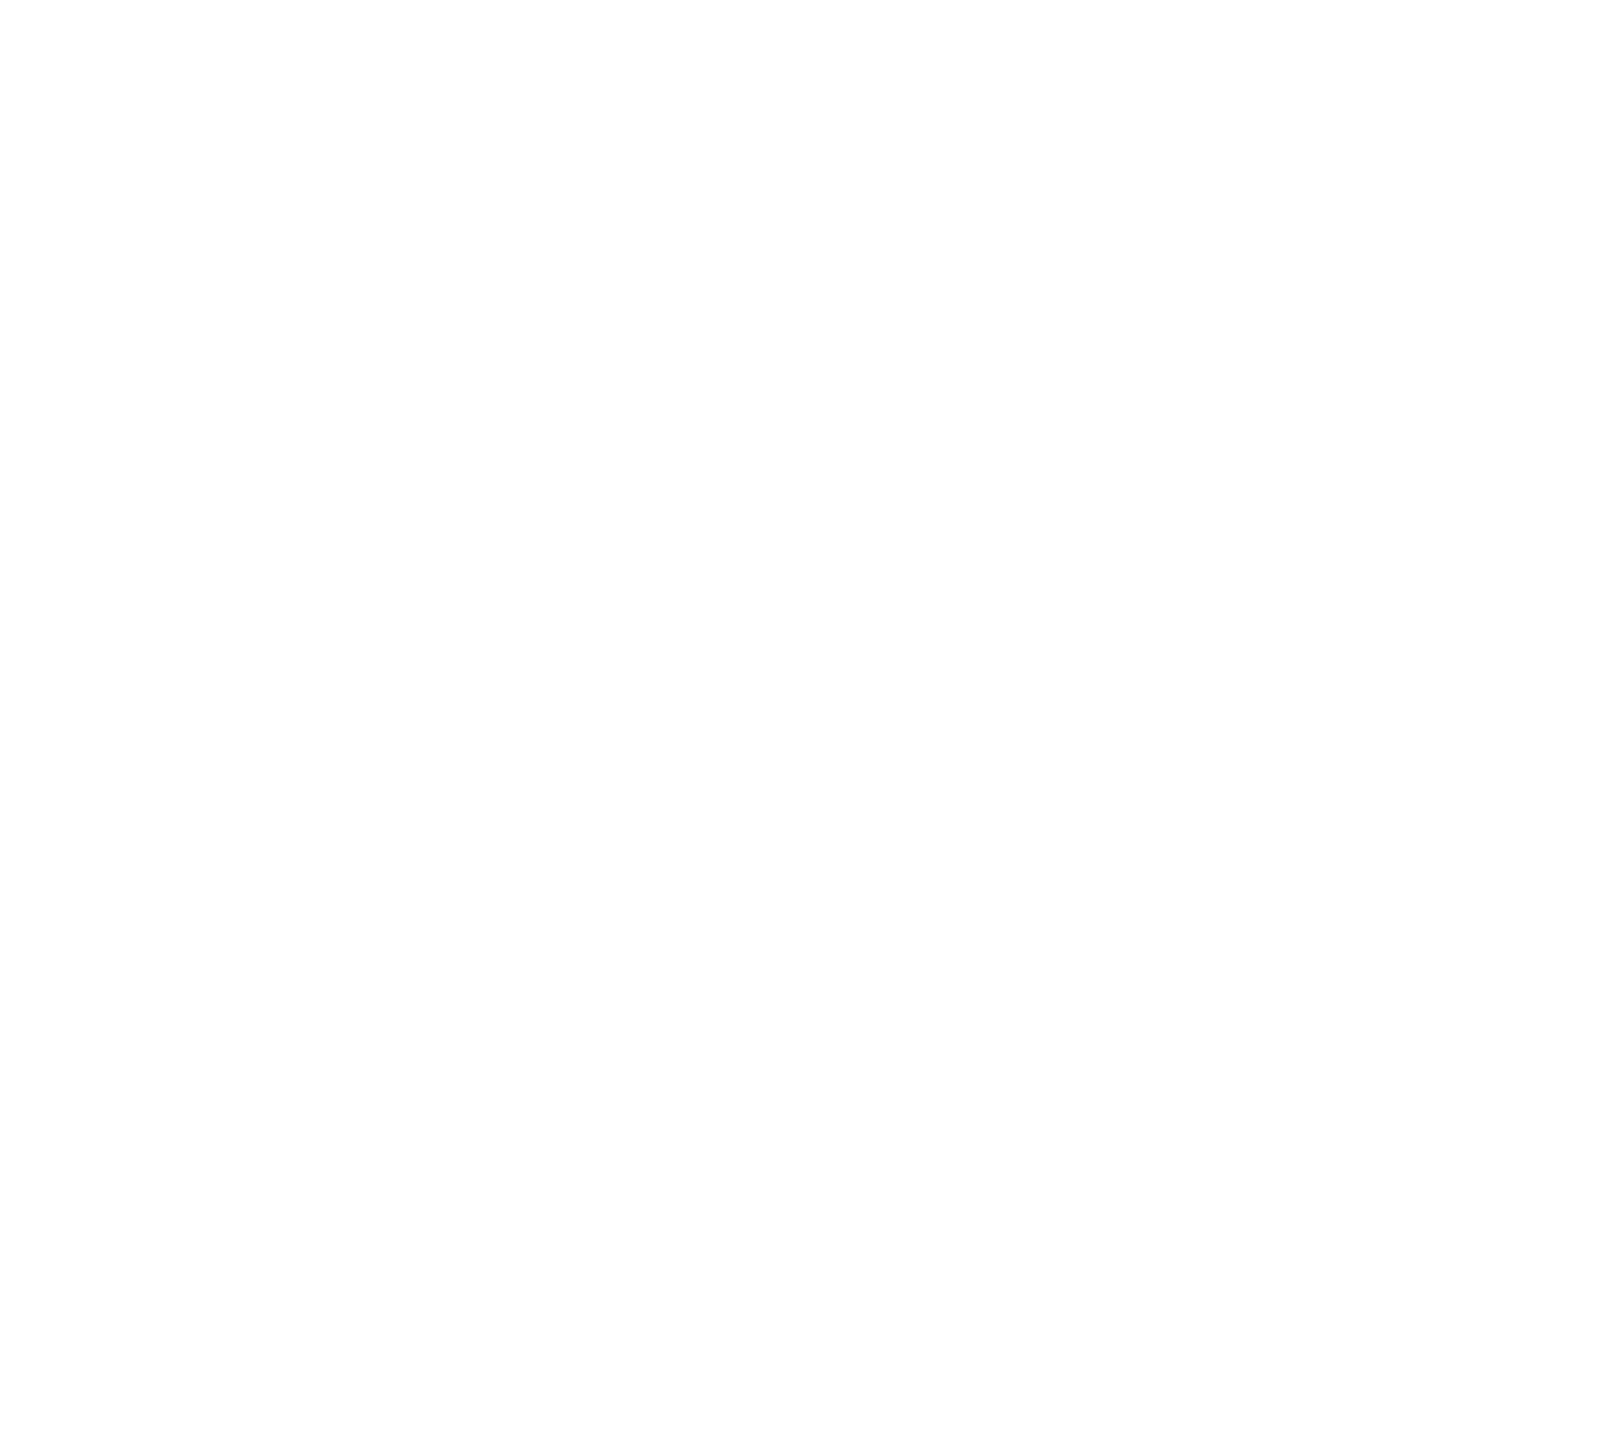 Brothers Bartenders